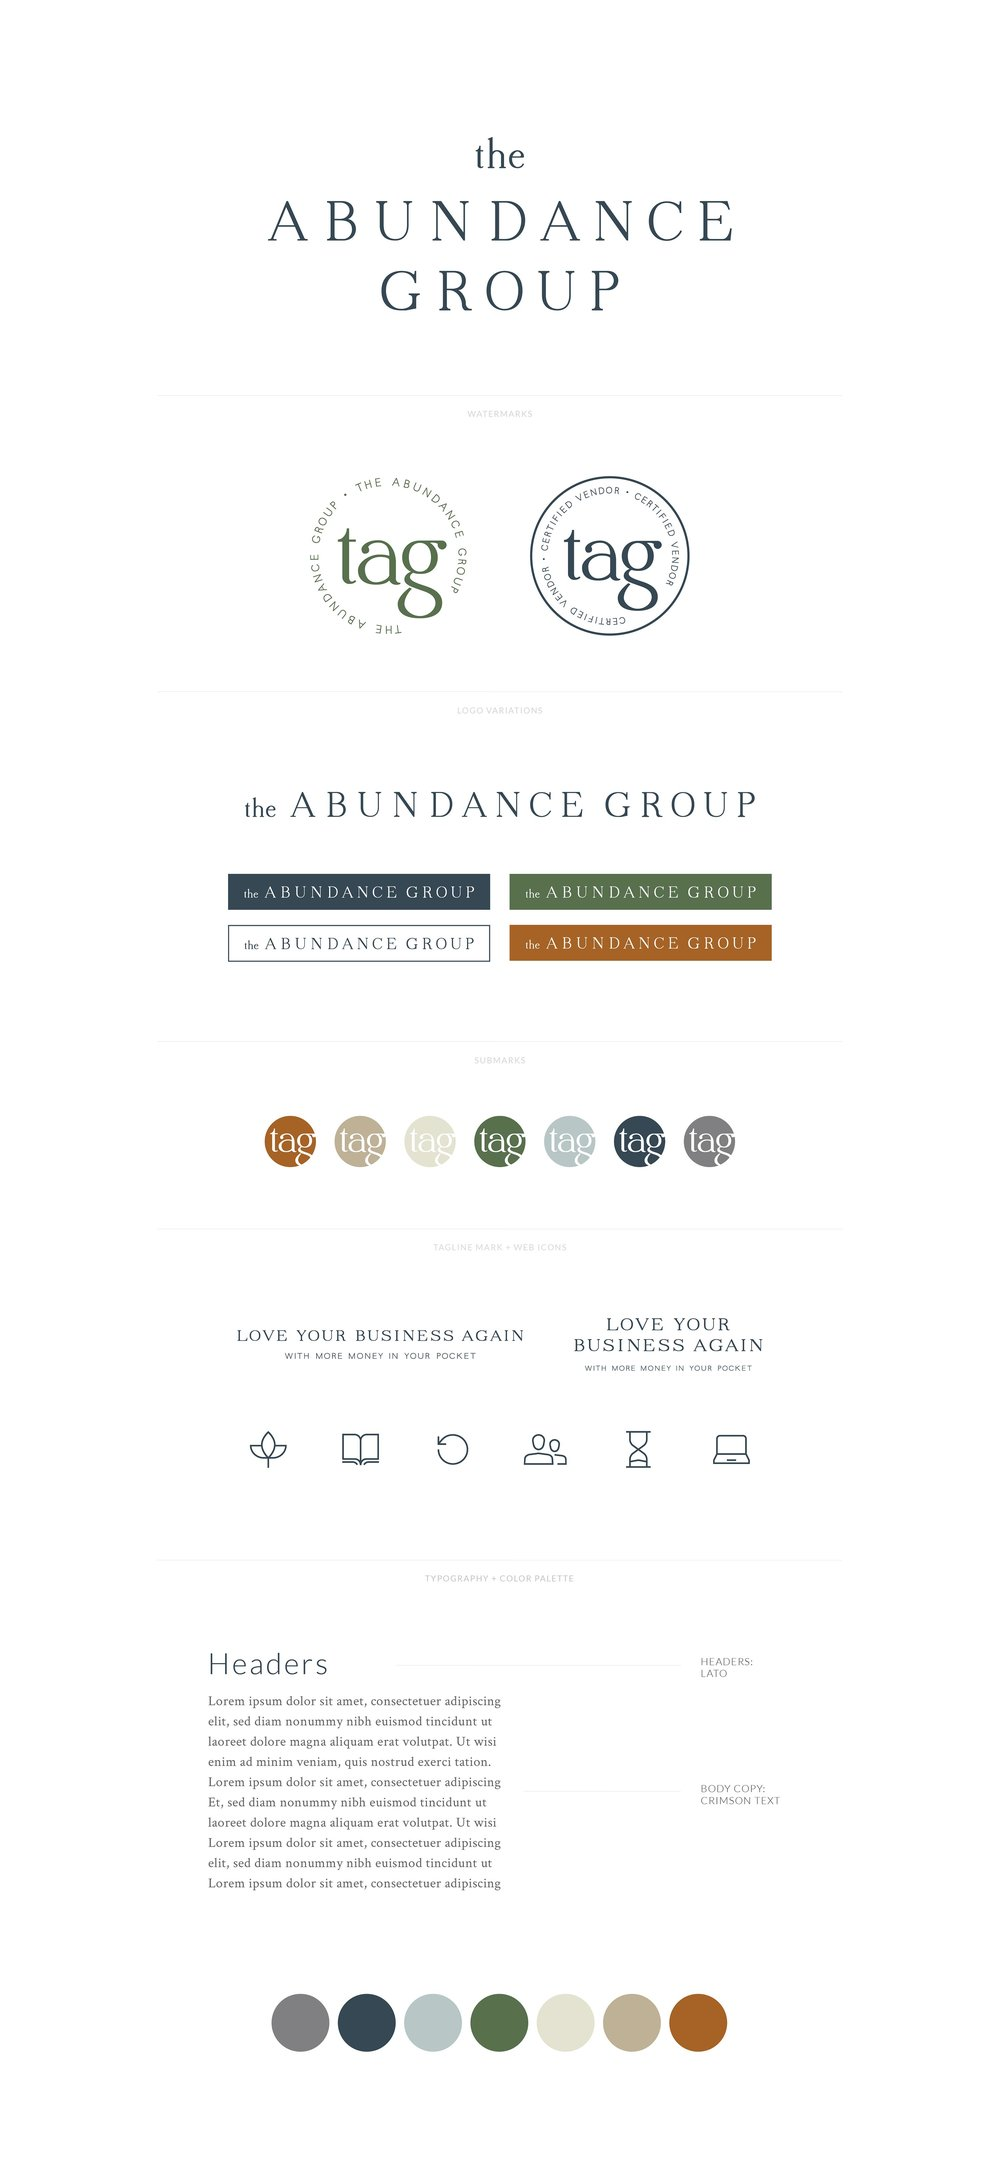 The Abundance Group | Minimal, Modern, Professional Logo, Watermark, Favicon, Tagline, Typography Font Styling, Color Palette | Branding by AllieMarie Design